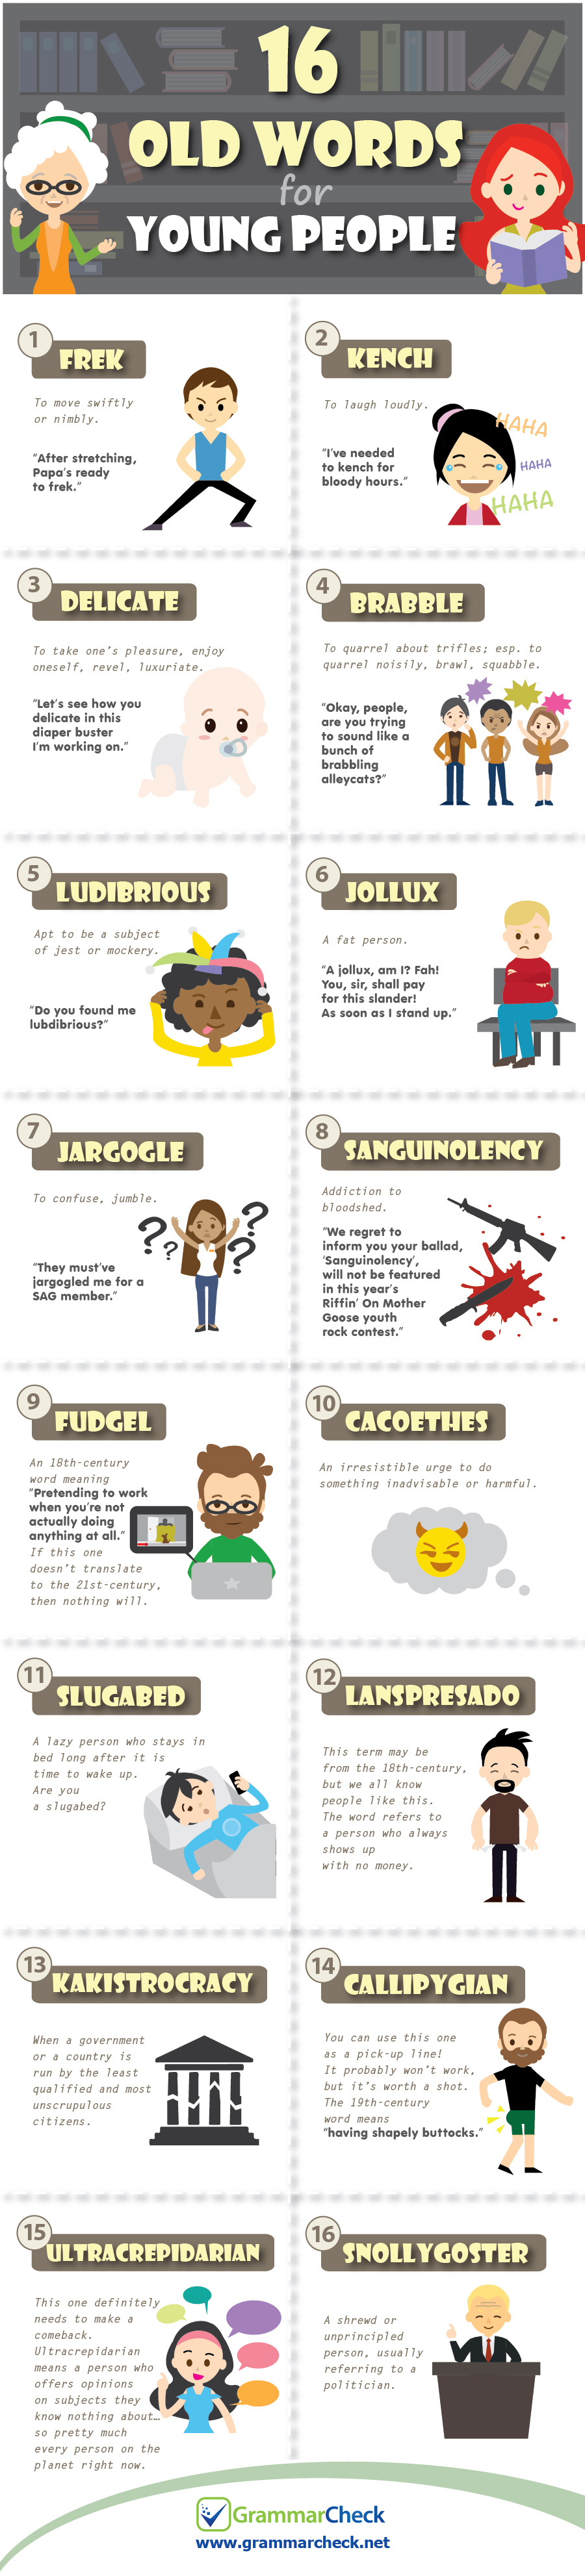 16 Old Words for Young People (Infographic)